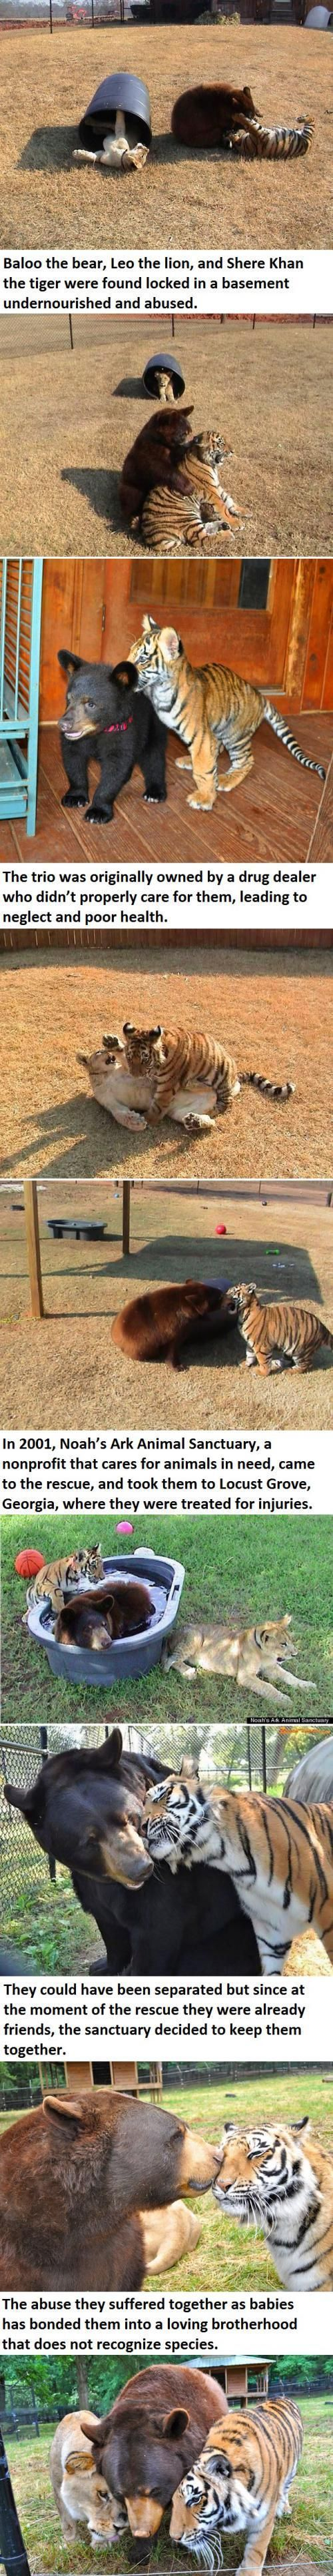 Wish ALL people were as enlightened as these amazing animals.  Thank goodness many are.